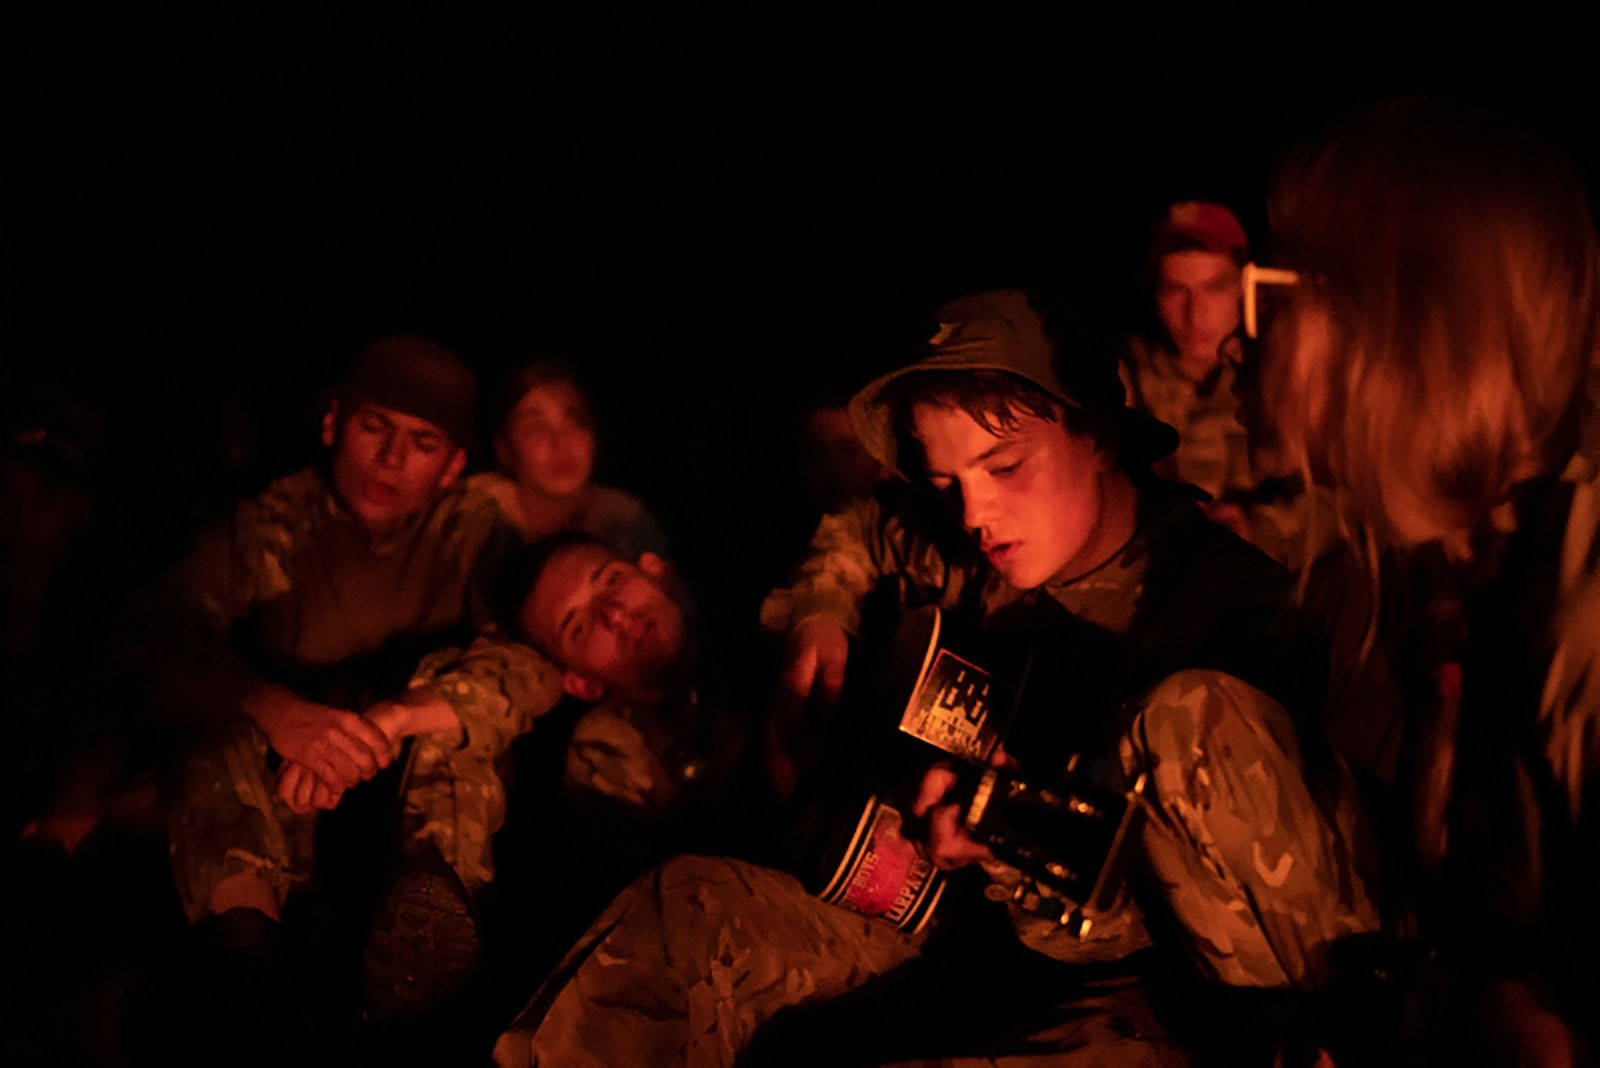 A young participant of the camp plays a guitar decorated with a sticker depicting bombs hitting a mosque, as others sing around a bonfire.